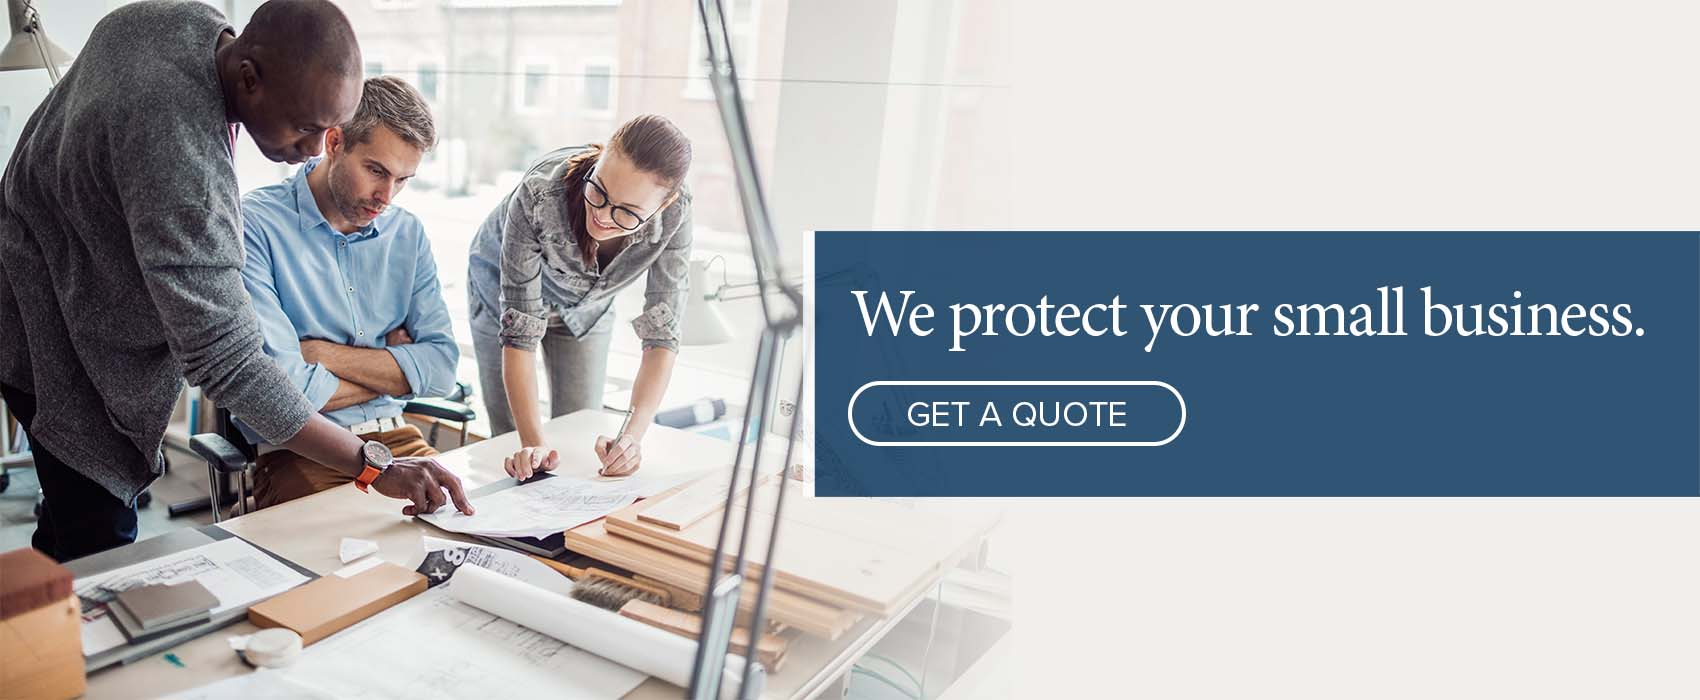 We protect small business